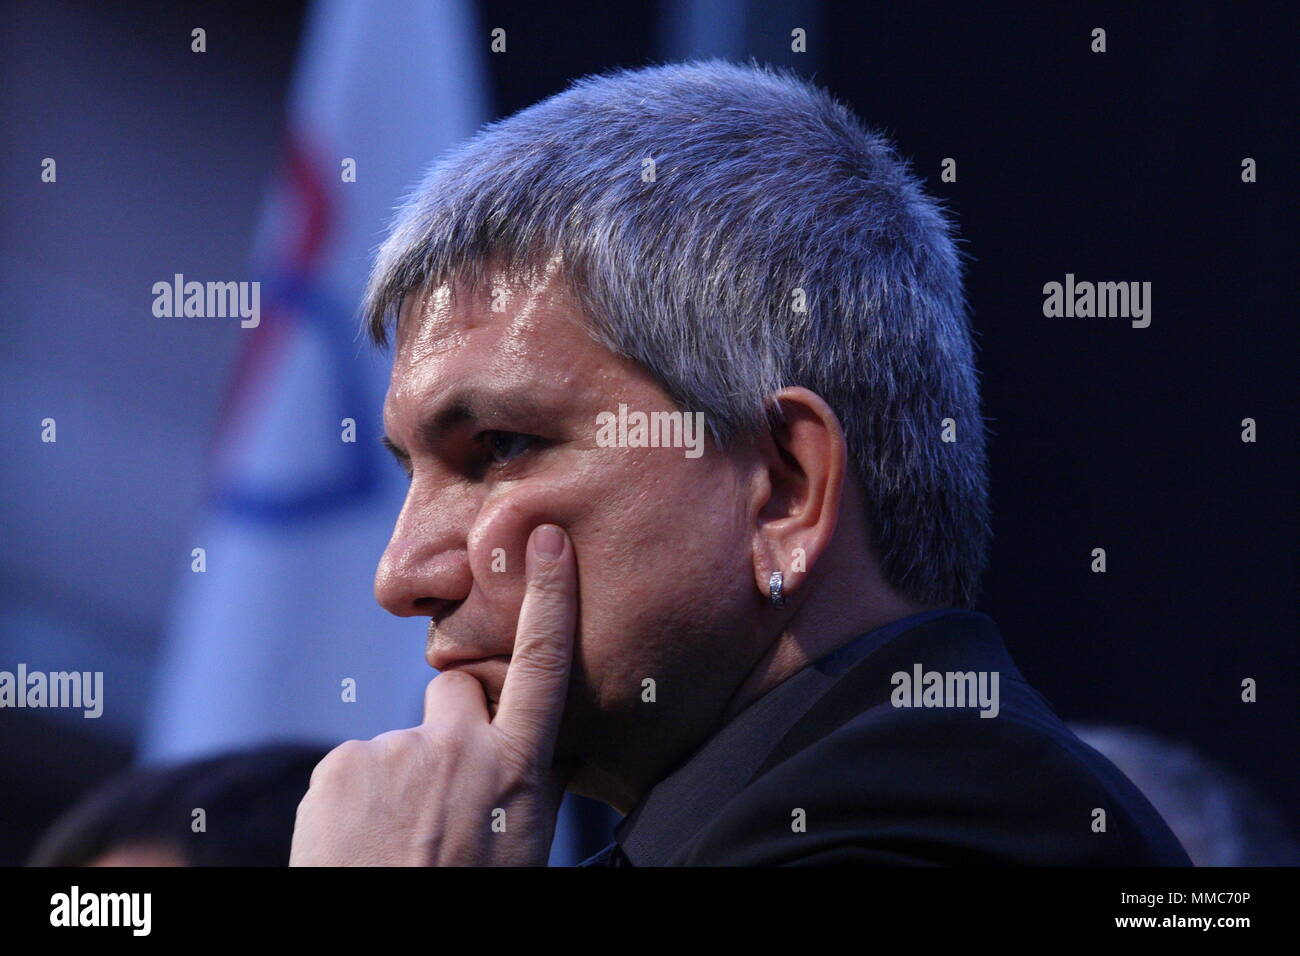 Nichi Vendola in Cassino on 21/5/2011 to support the candidate for mayor Petrarcone - Stock Image